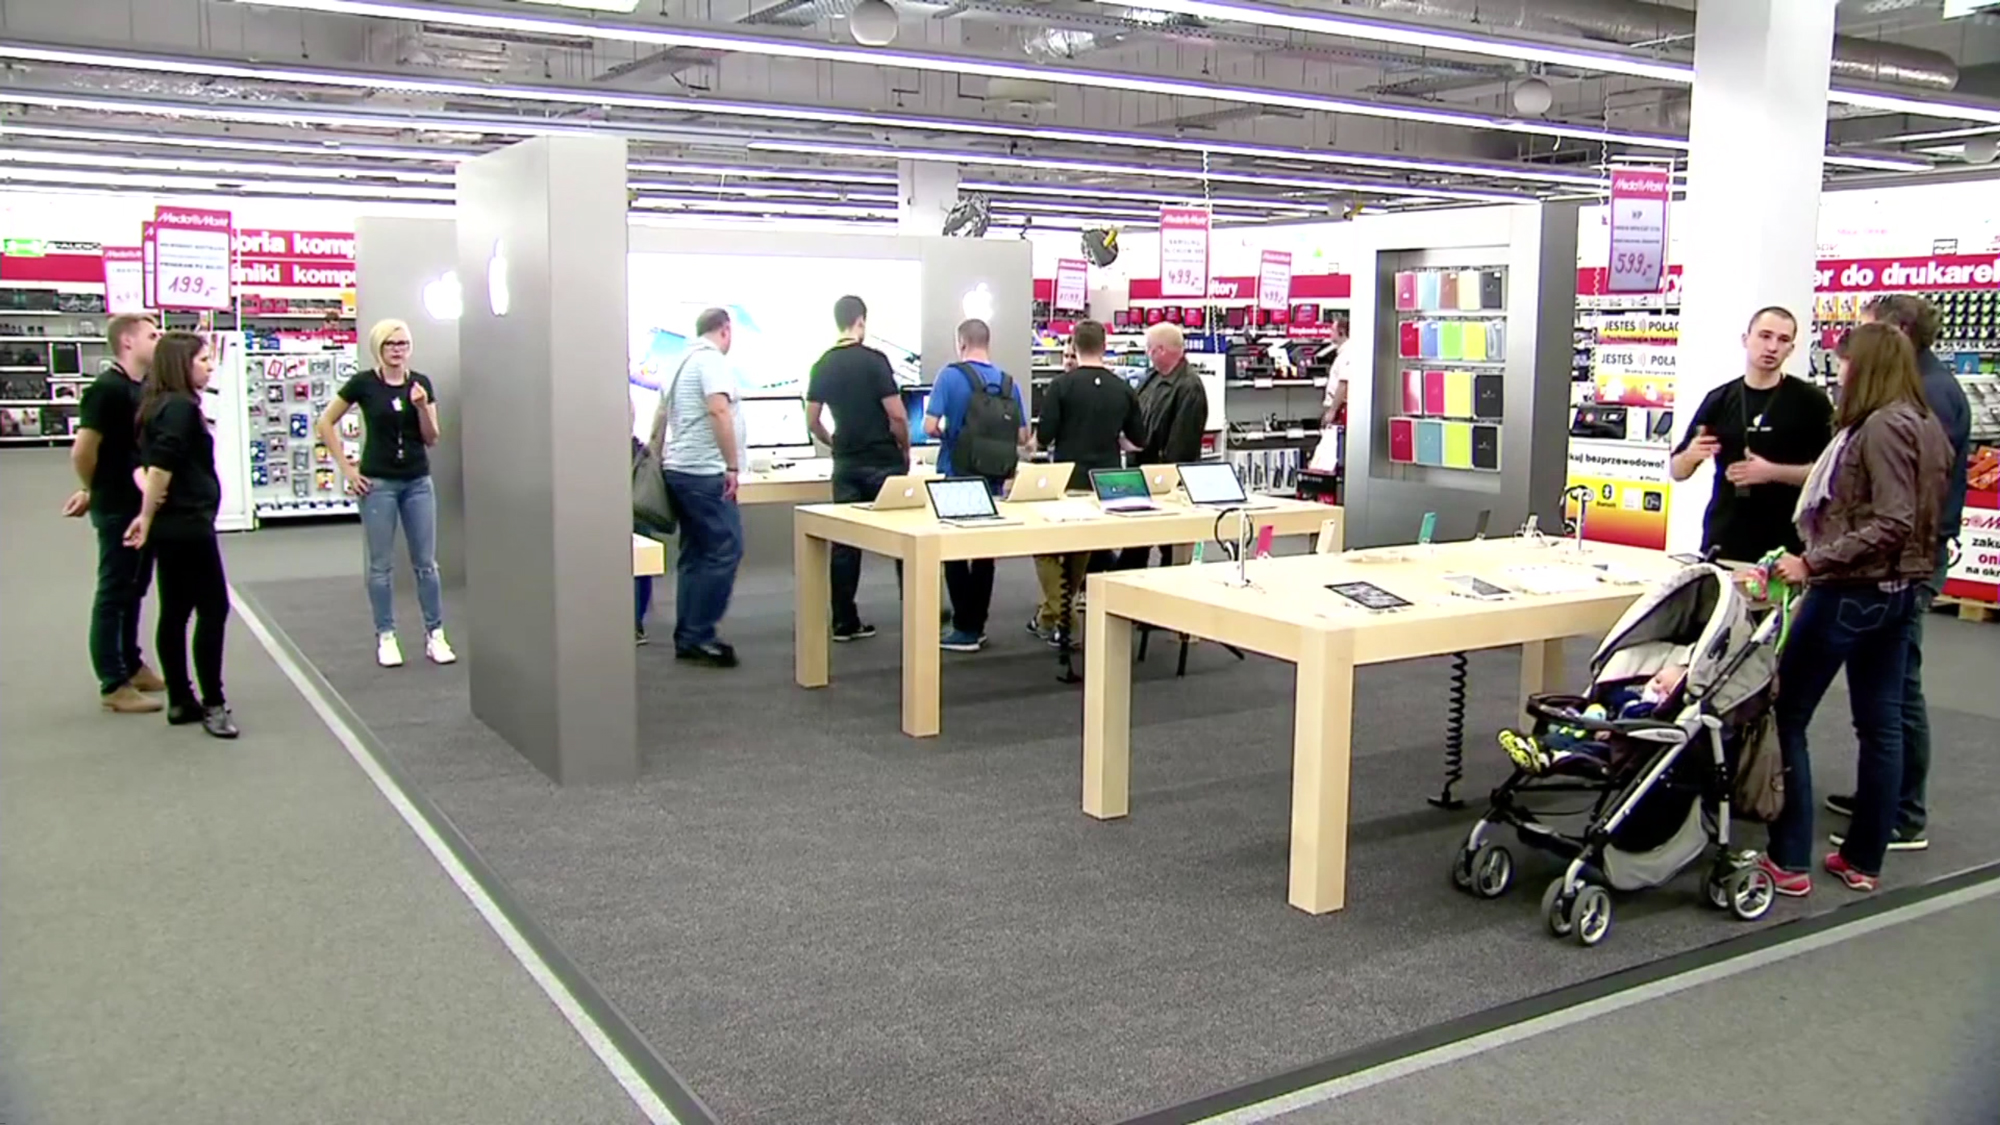 Apple-Shop-Media-Markt-hero-01